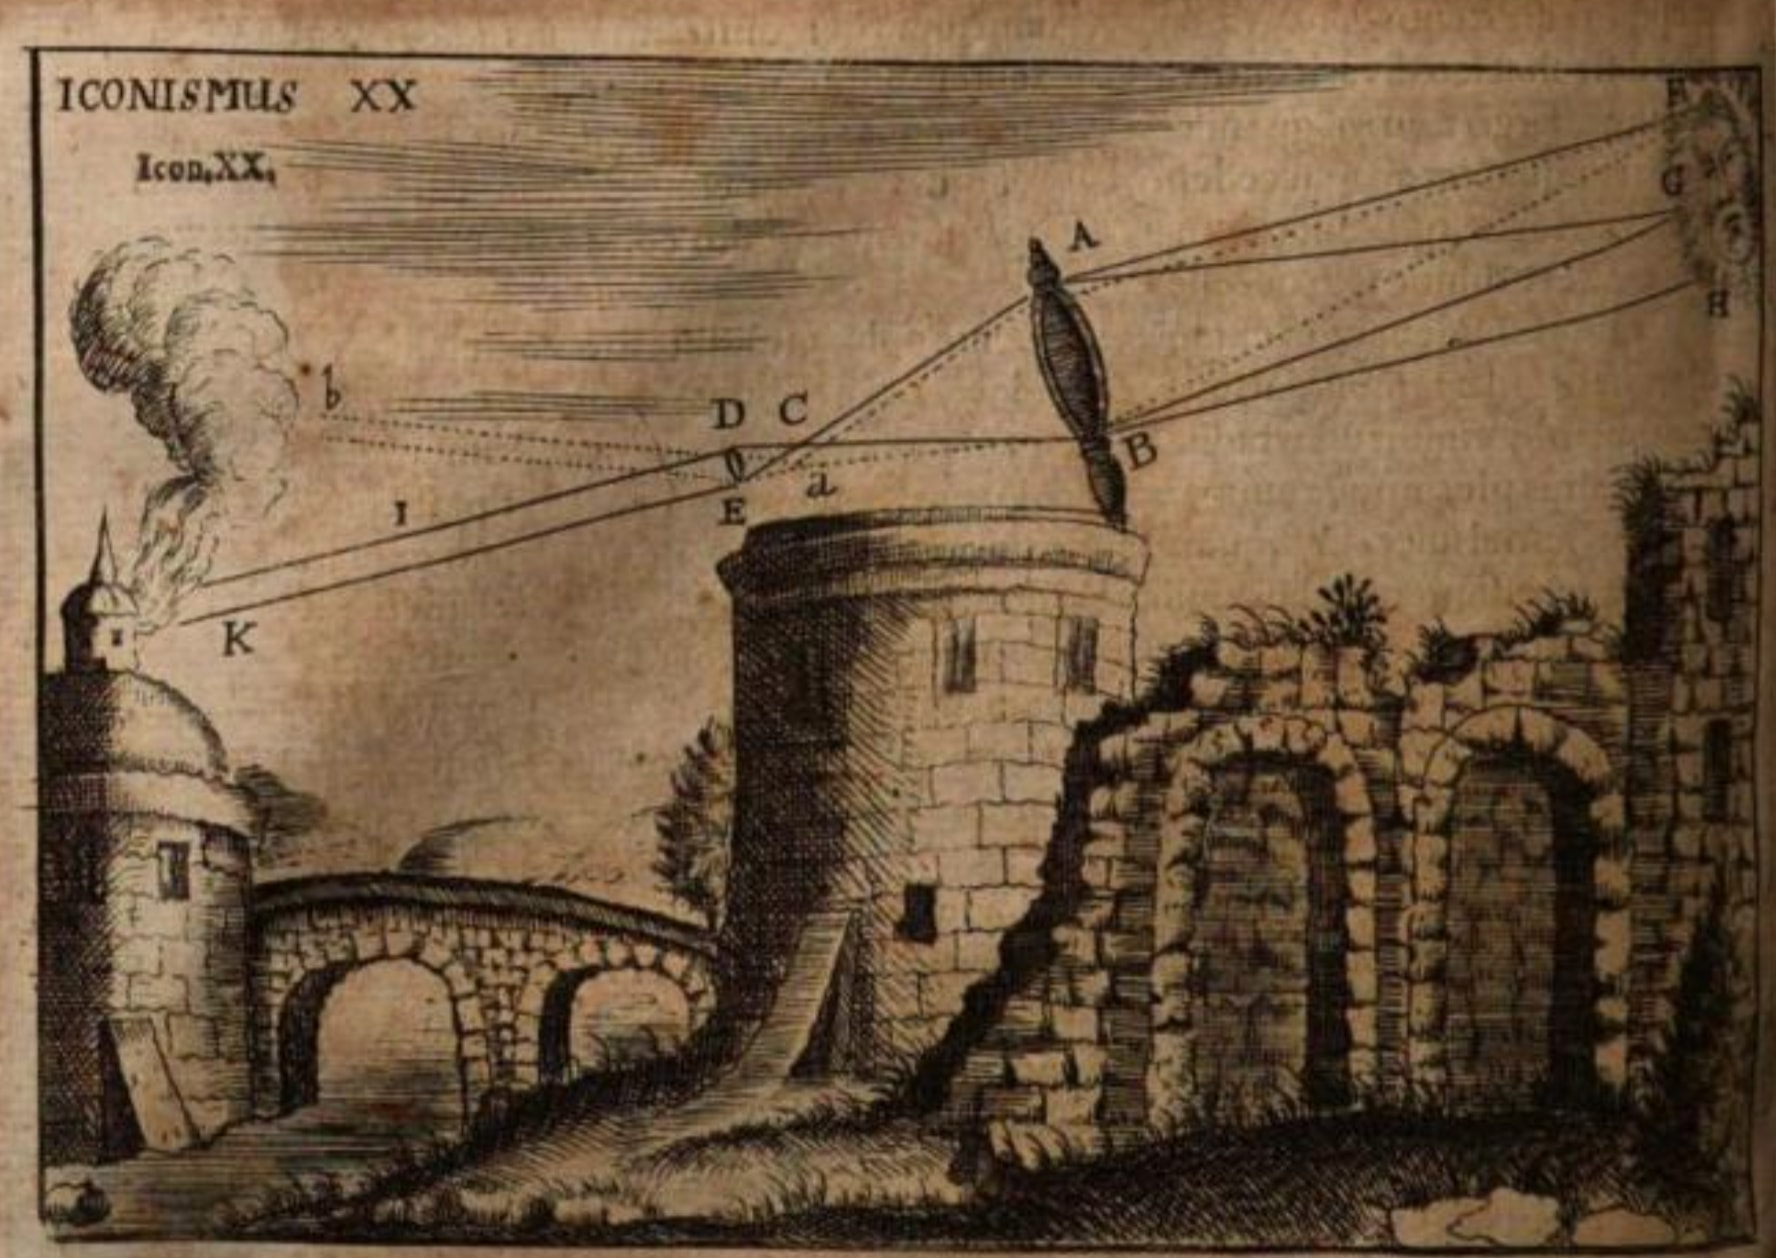 17th century sketch showing different optic configurations